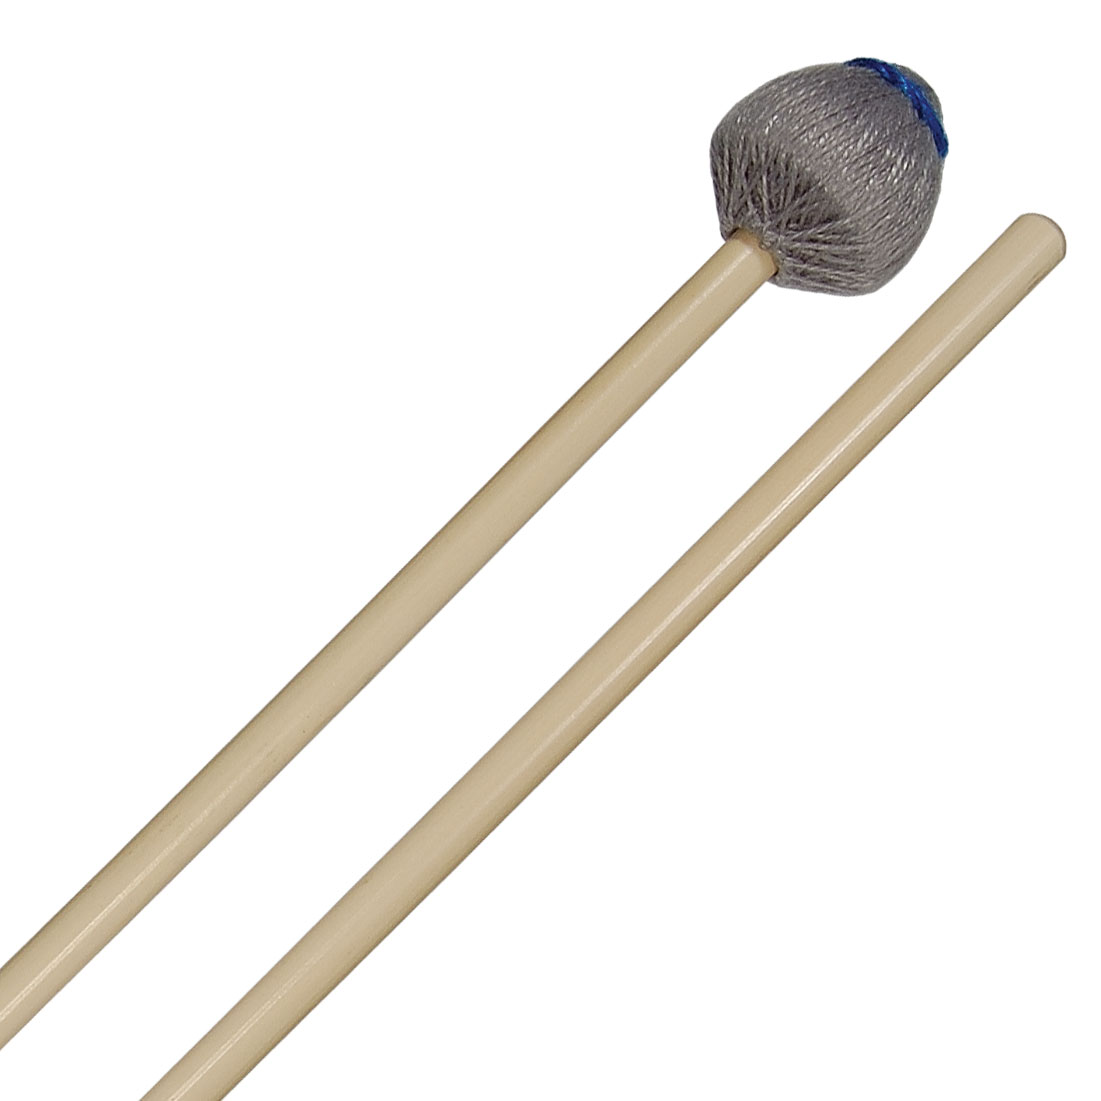 Vic Firth Ney Rosauro Signature Medium Vibraphone Mallets